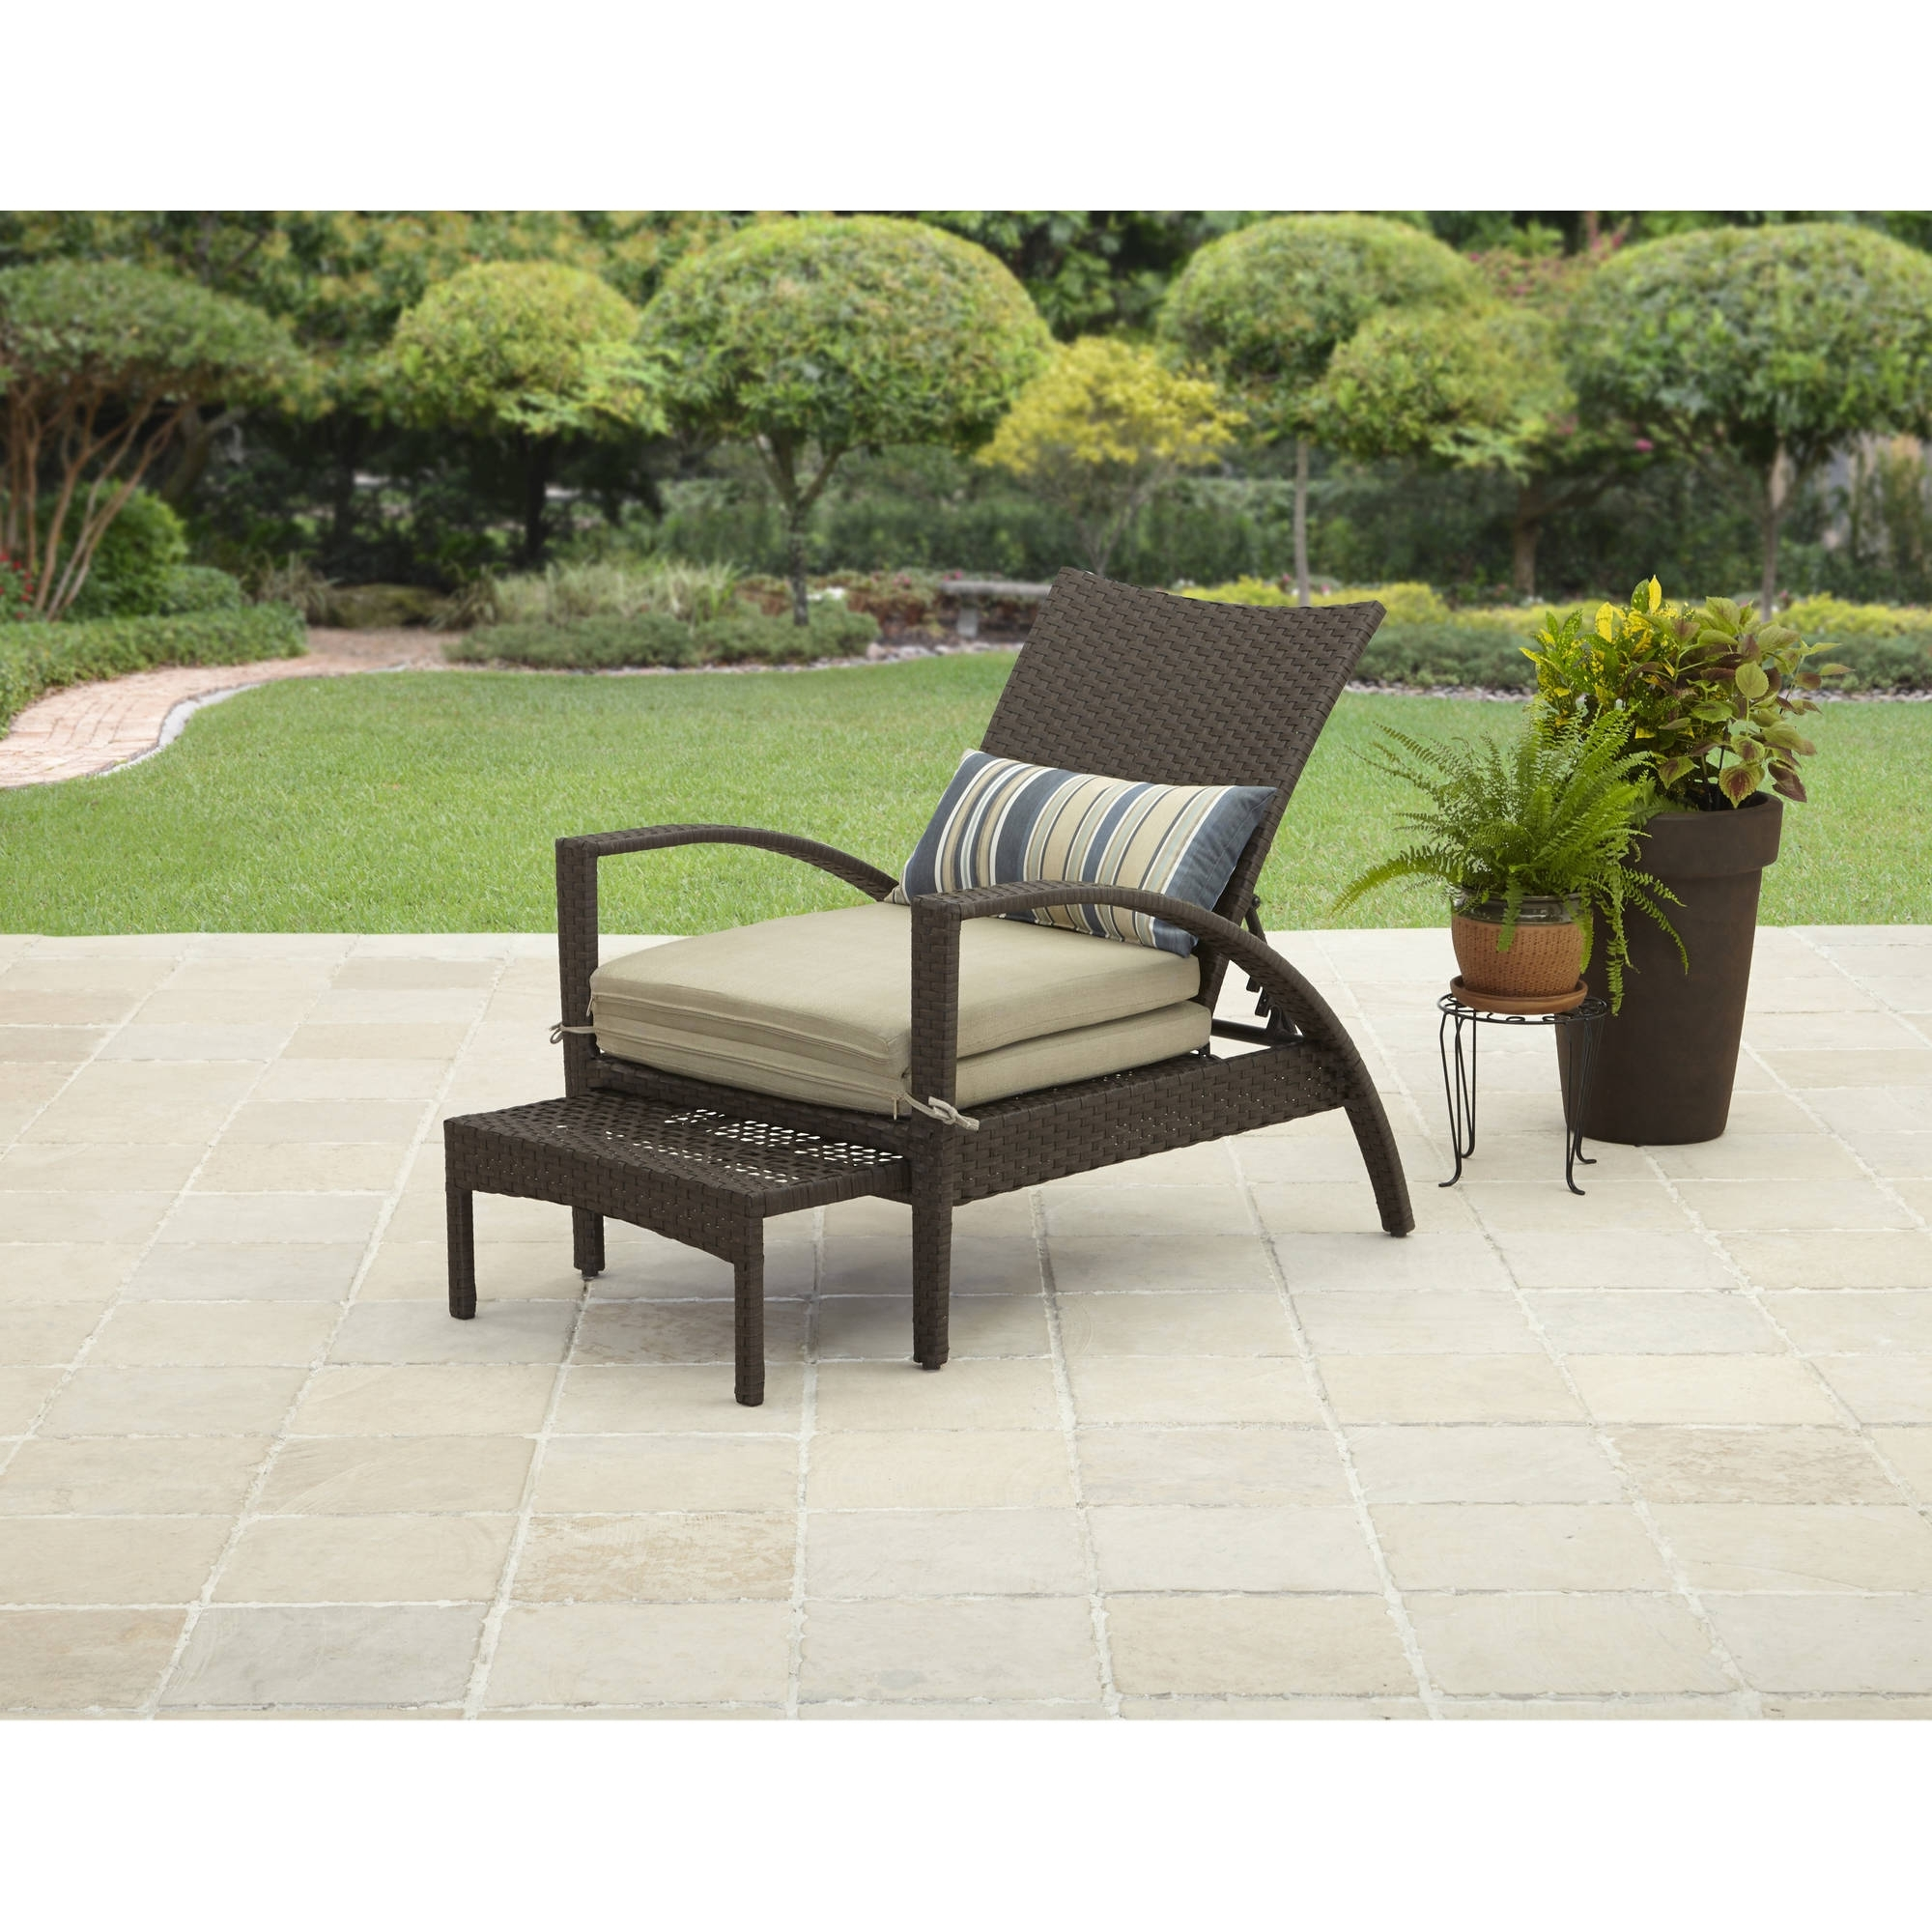 Walmart Chaises Pertaining To Famous Better Homes And Gardens Avila Beach Pull Out Chaise – Walmart (View 15 of 15)